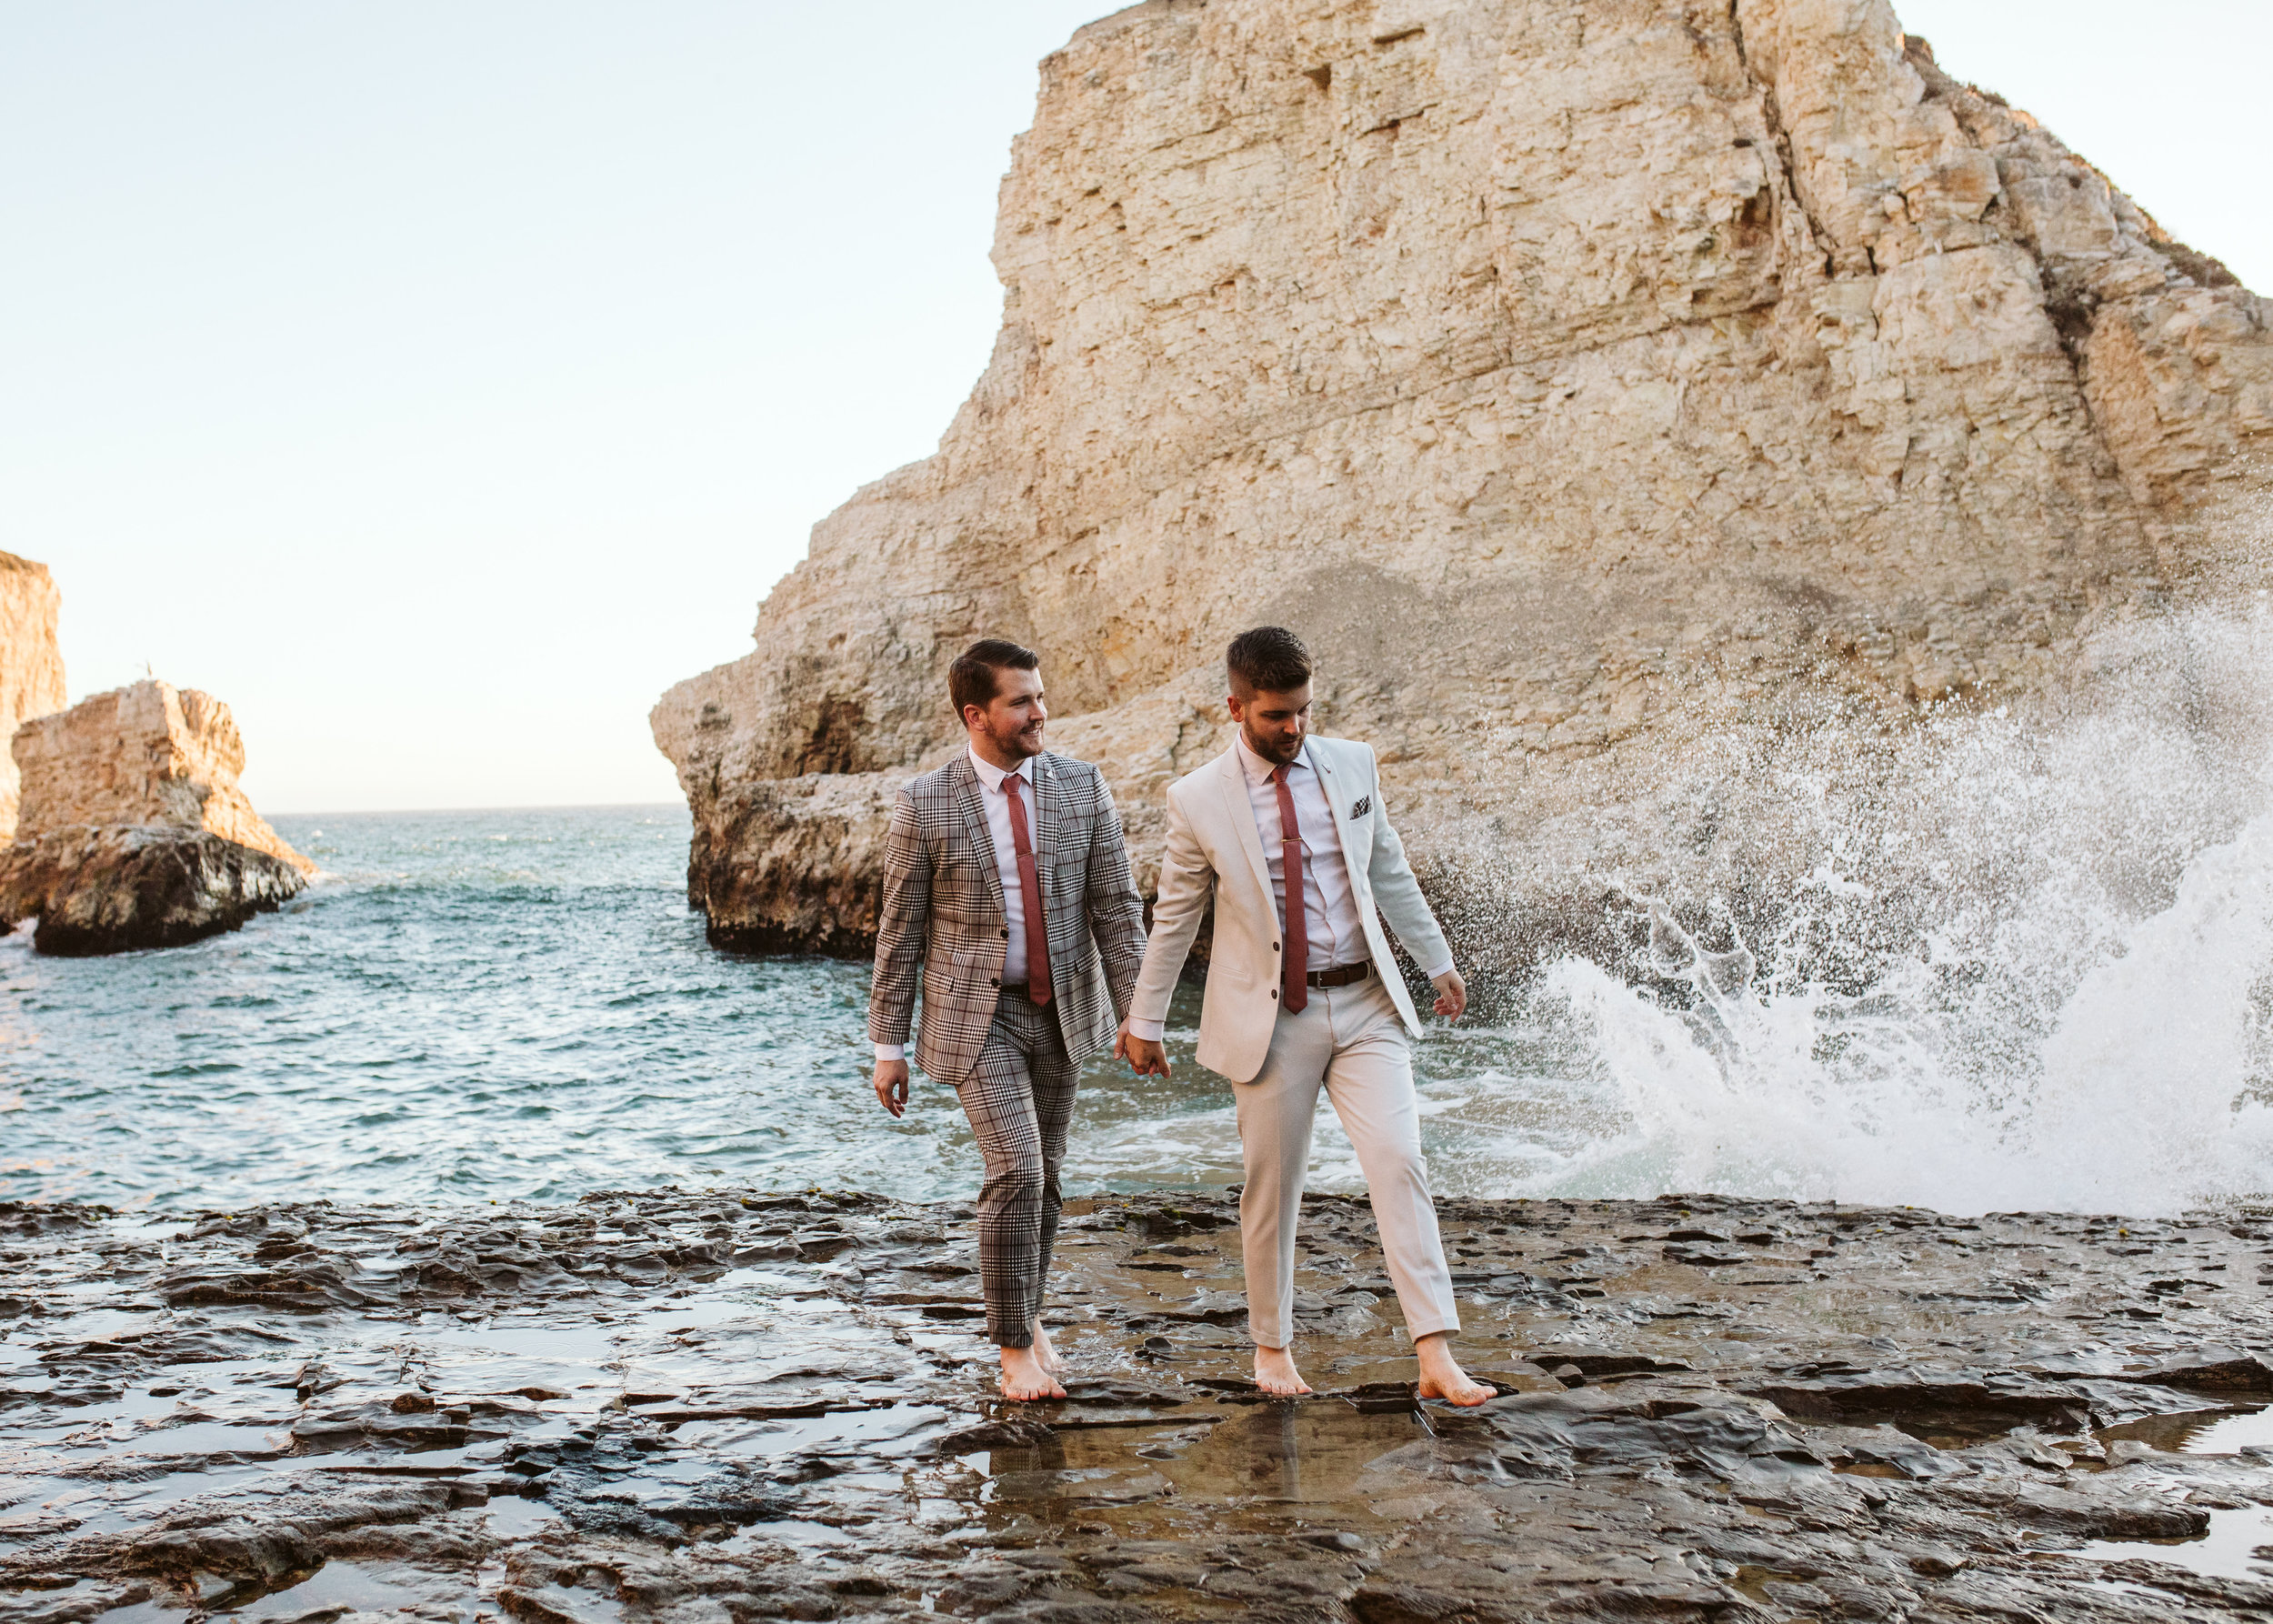 DEREK & JASON - The California Cliffside Wedding // Sharkfin Cove - Davenport, California